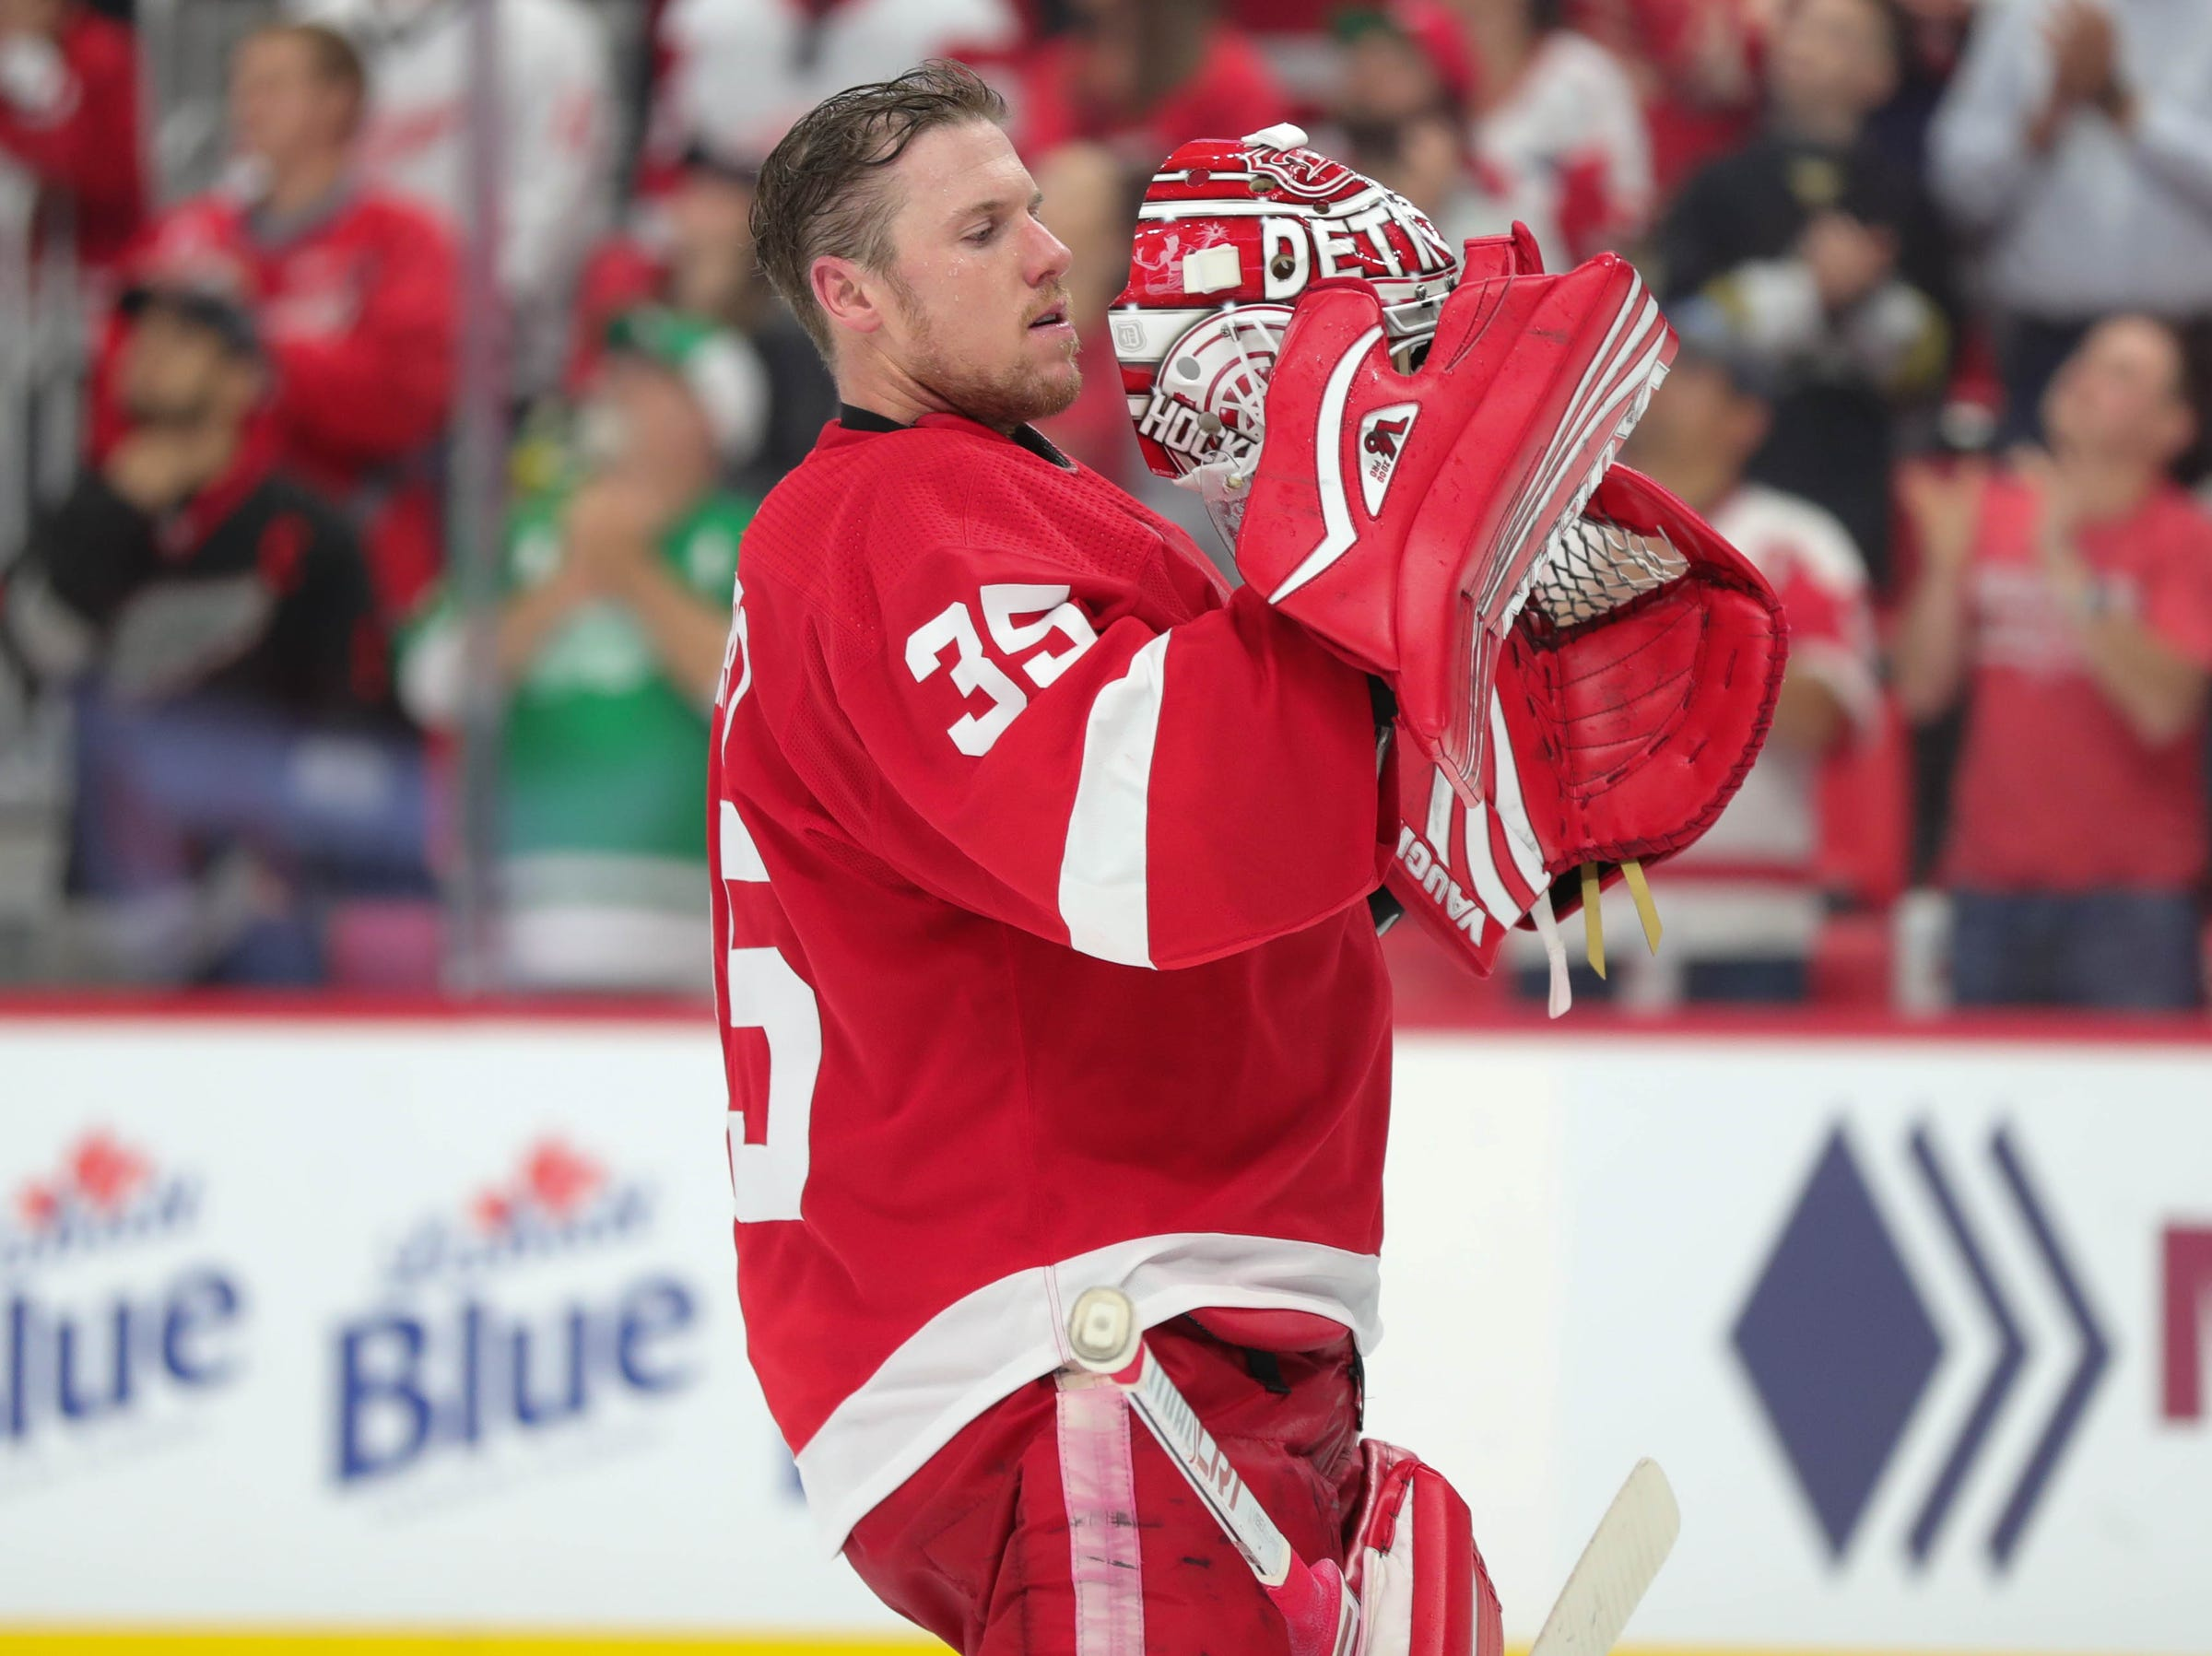 Red Wings goalie Jimmy Howard in goal during the second period of the Wings' 3-2 overtime loss to the Blue Jackets on Thursday, Oct. 4, 2018, at Little Caesars Arena.